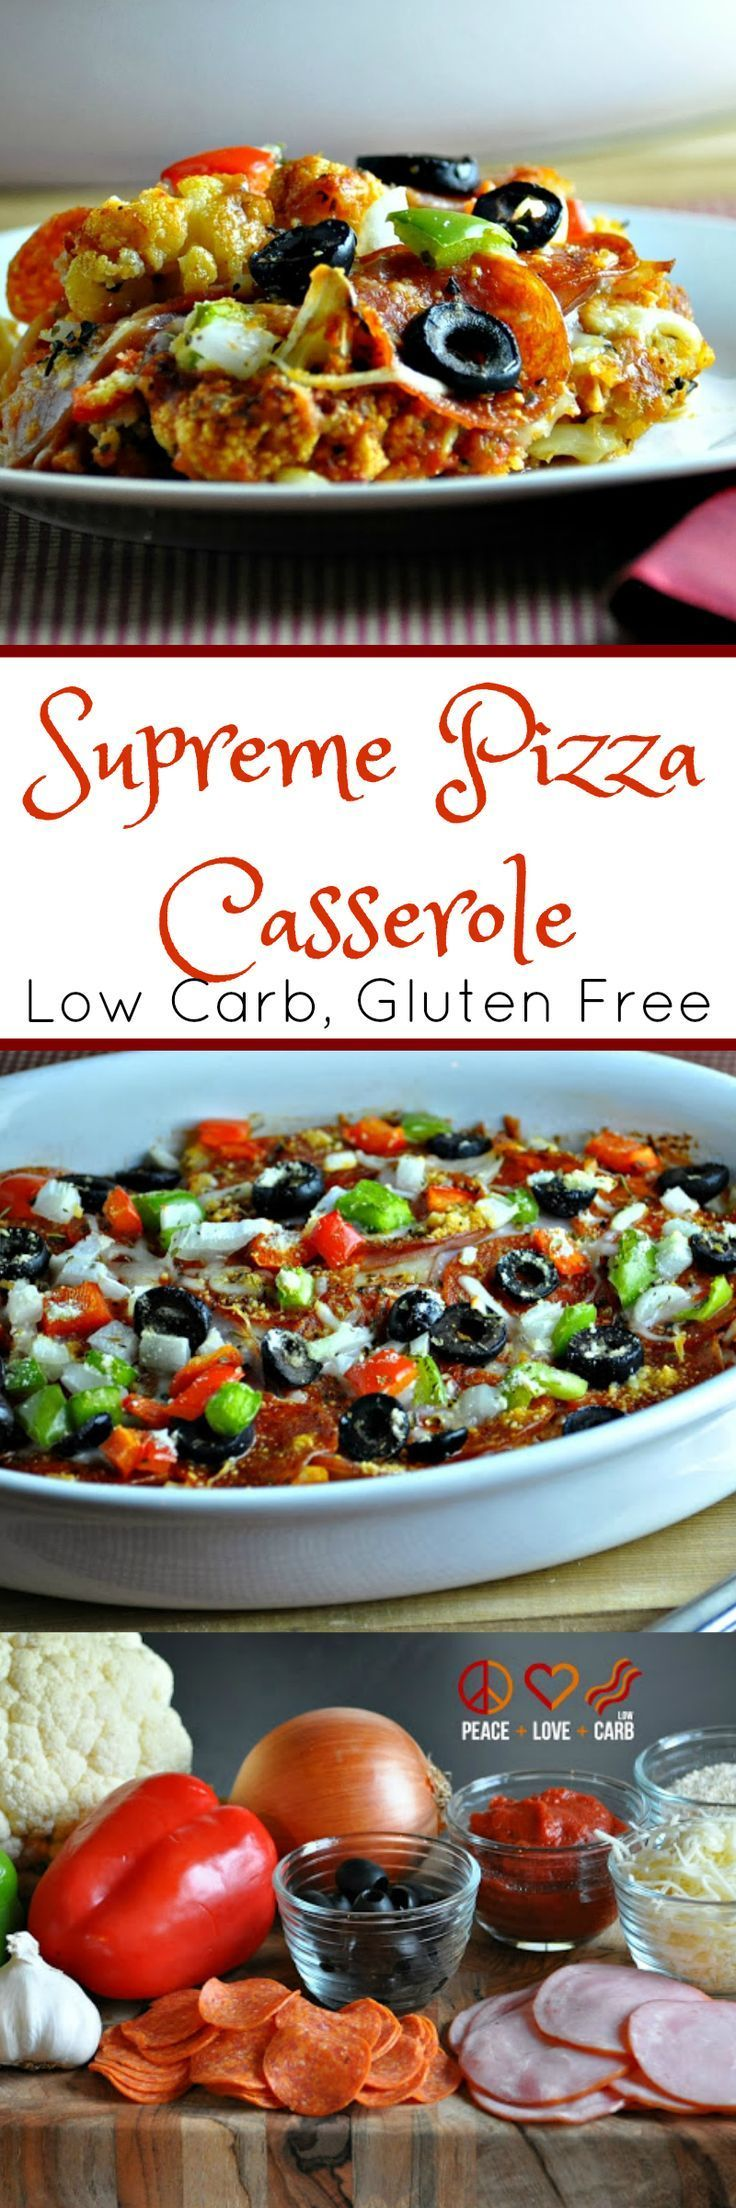 Supreme Pizza Cauliflower Casserole - Low Carb, Gluten Free - this keto friendly pizza is full of delicious tasting ingredients. | Peace Love and Low Carb: